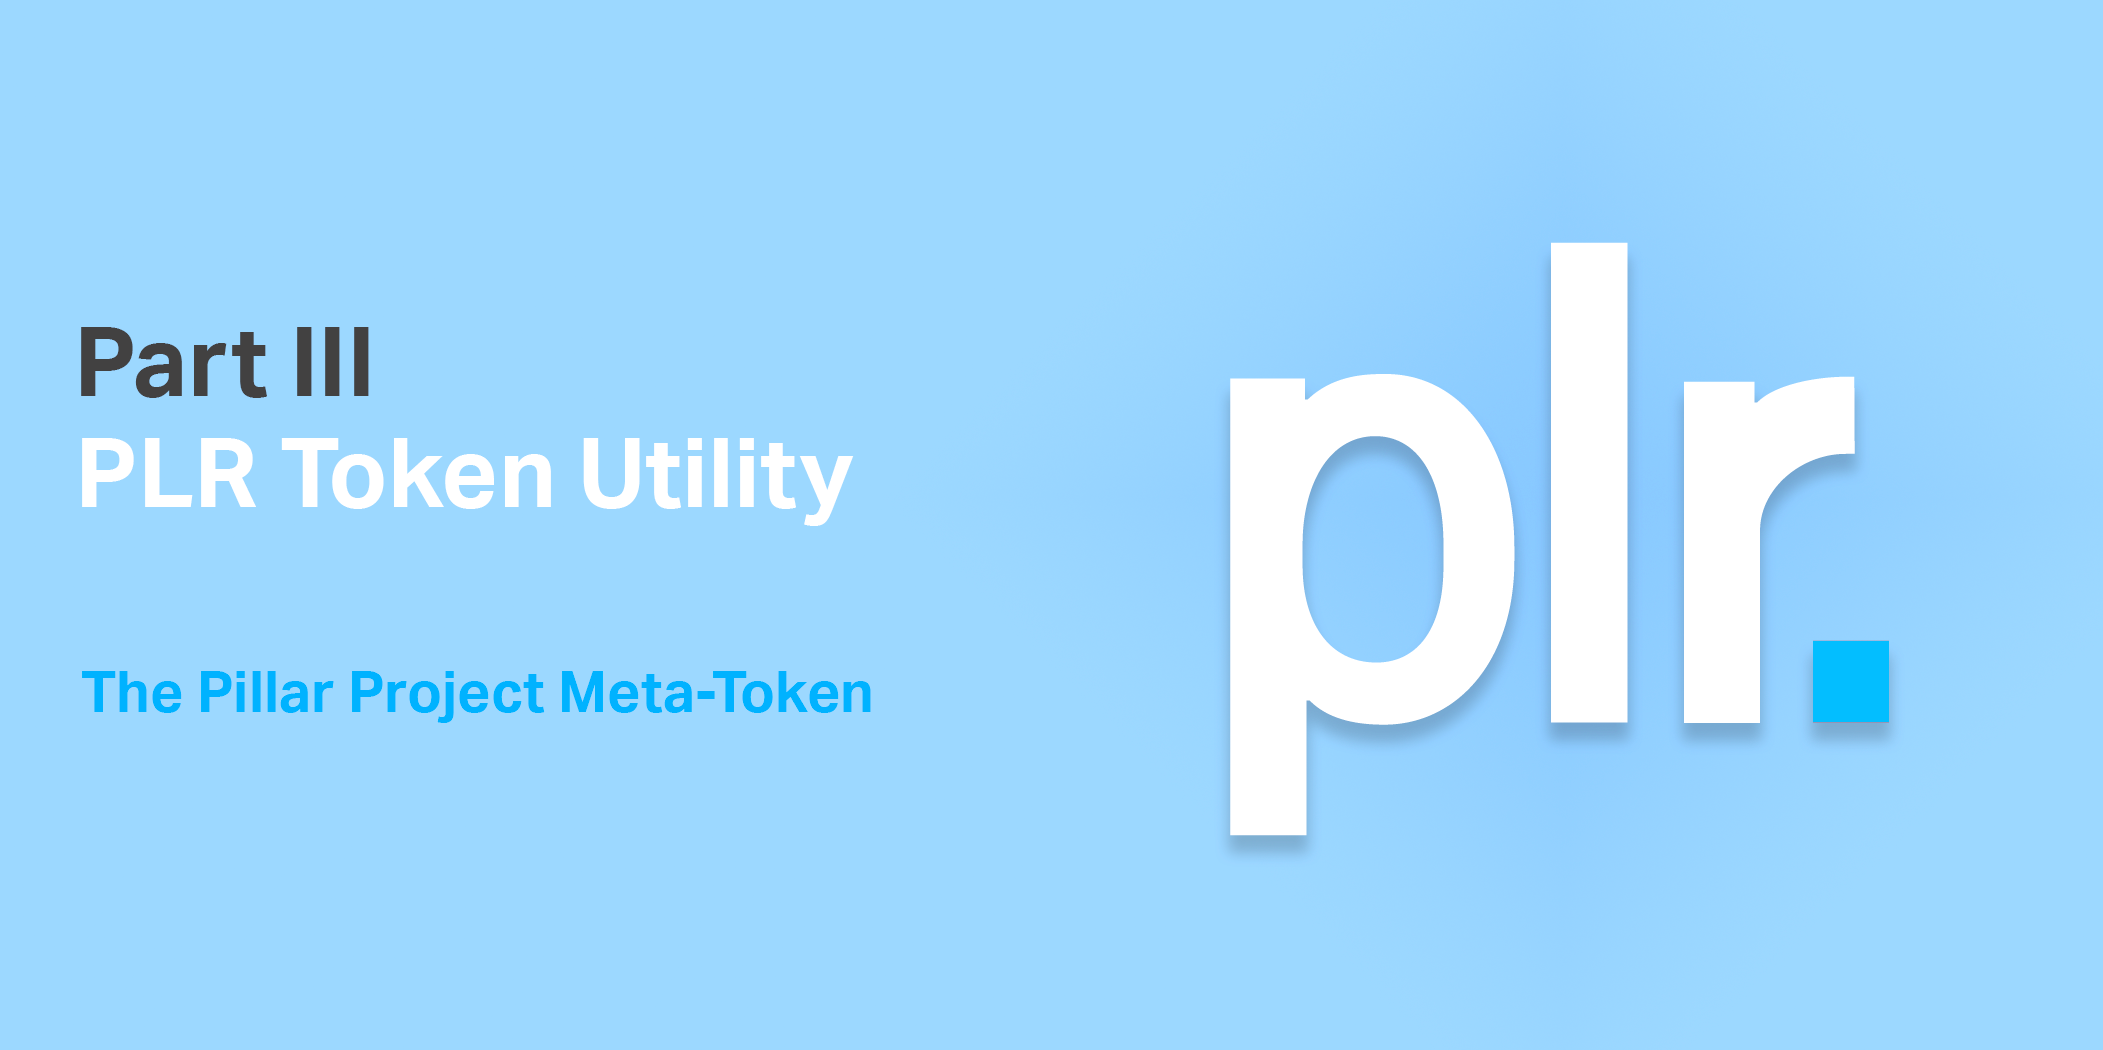 Understanding PLR Utility Part III: The Pillar Project Meta-Token